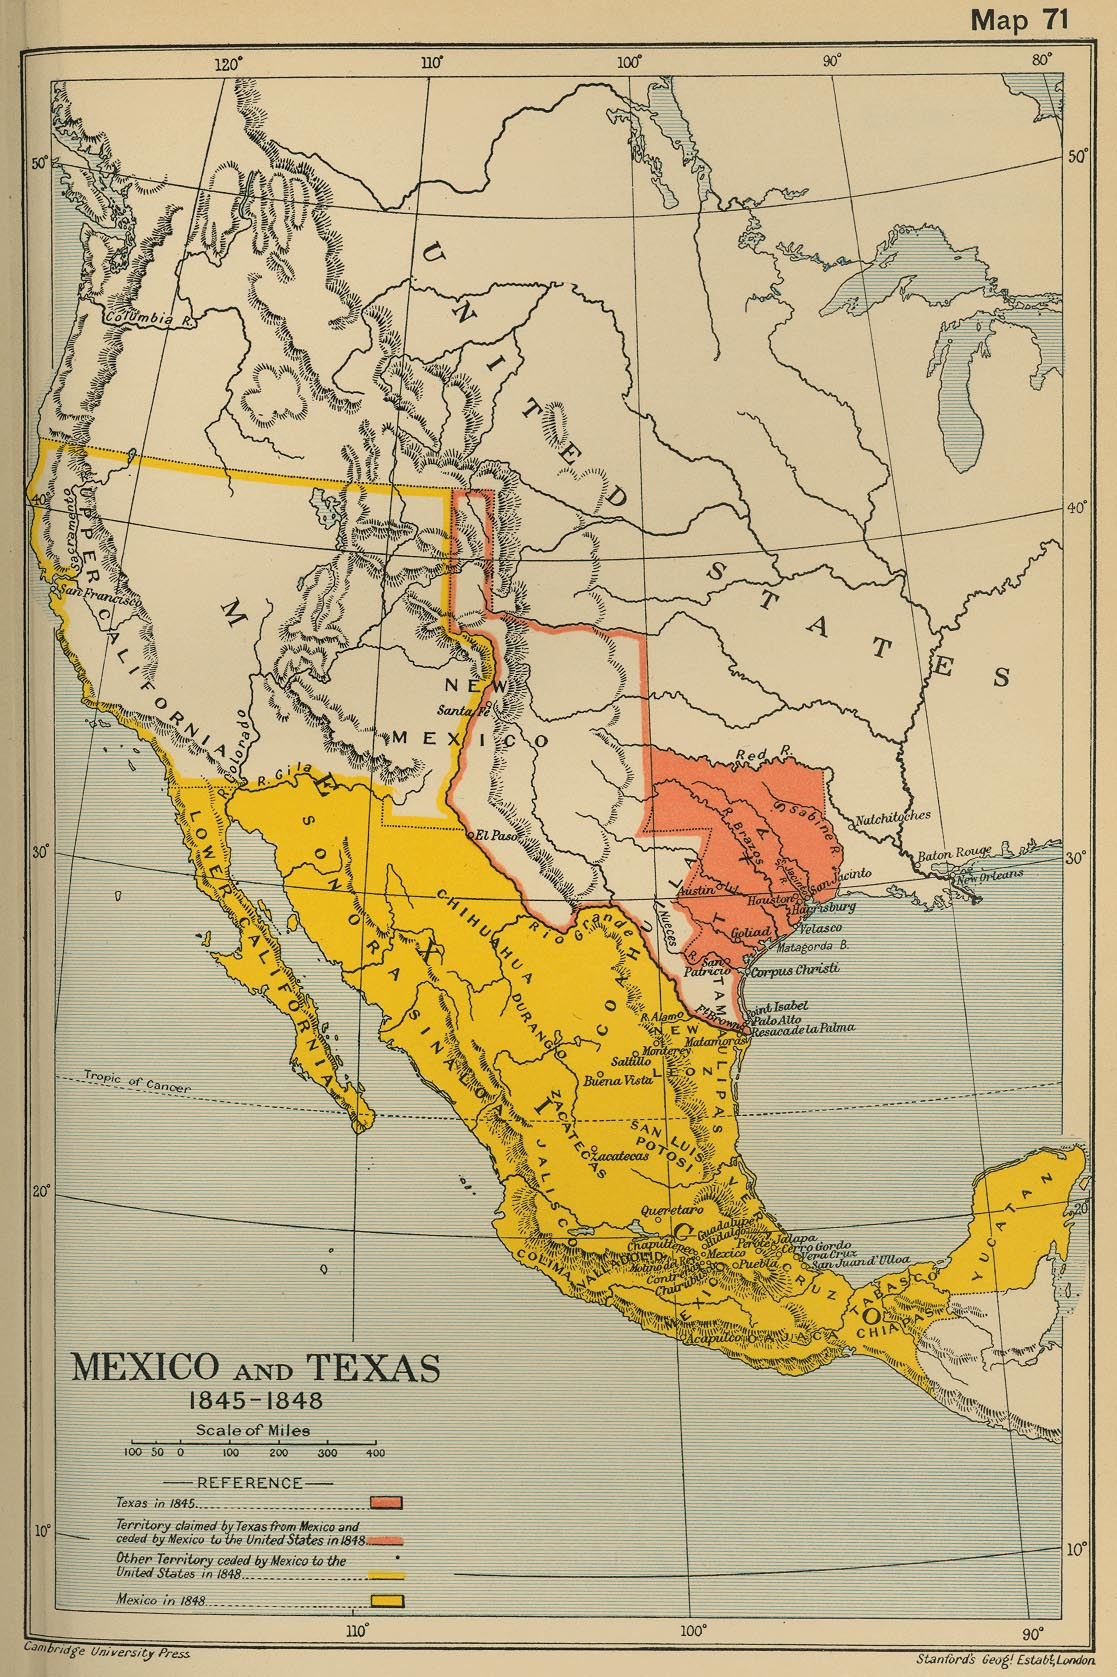 Map Of Mexico And Texas 1845-1848 - Texas Map 1846